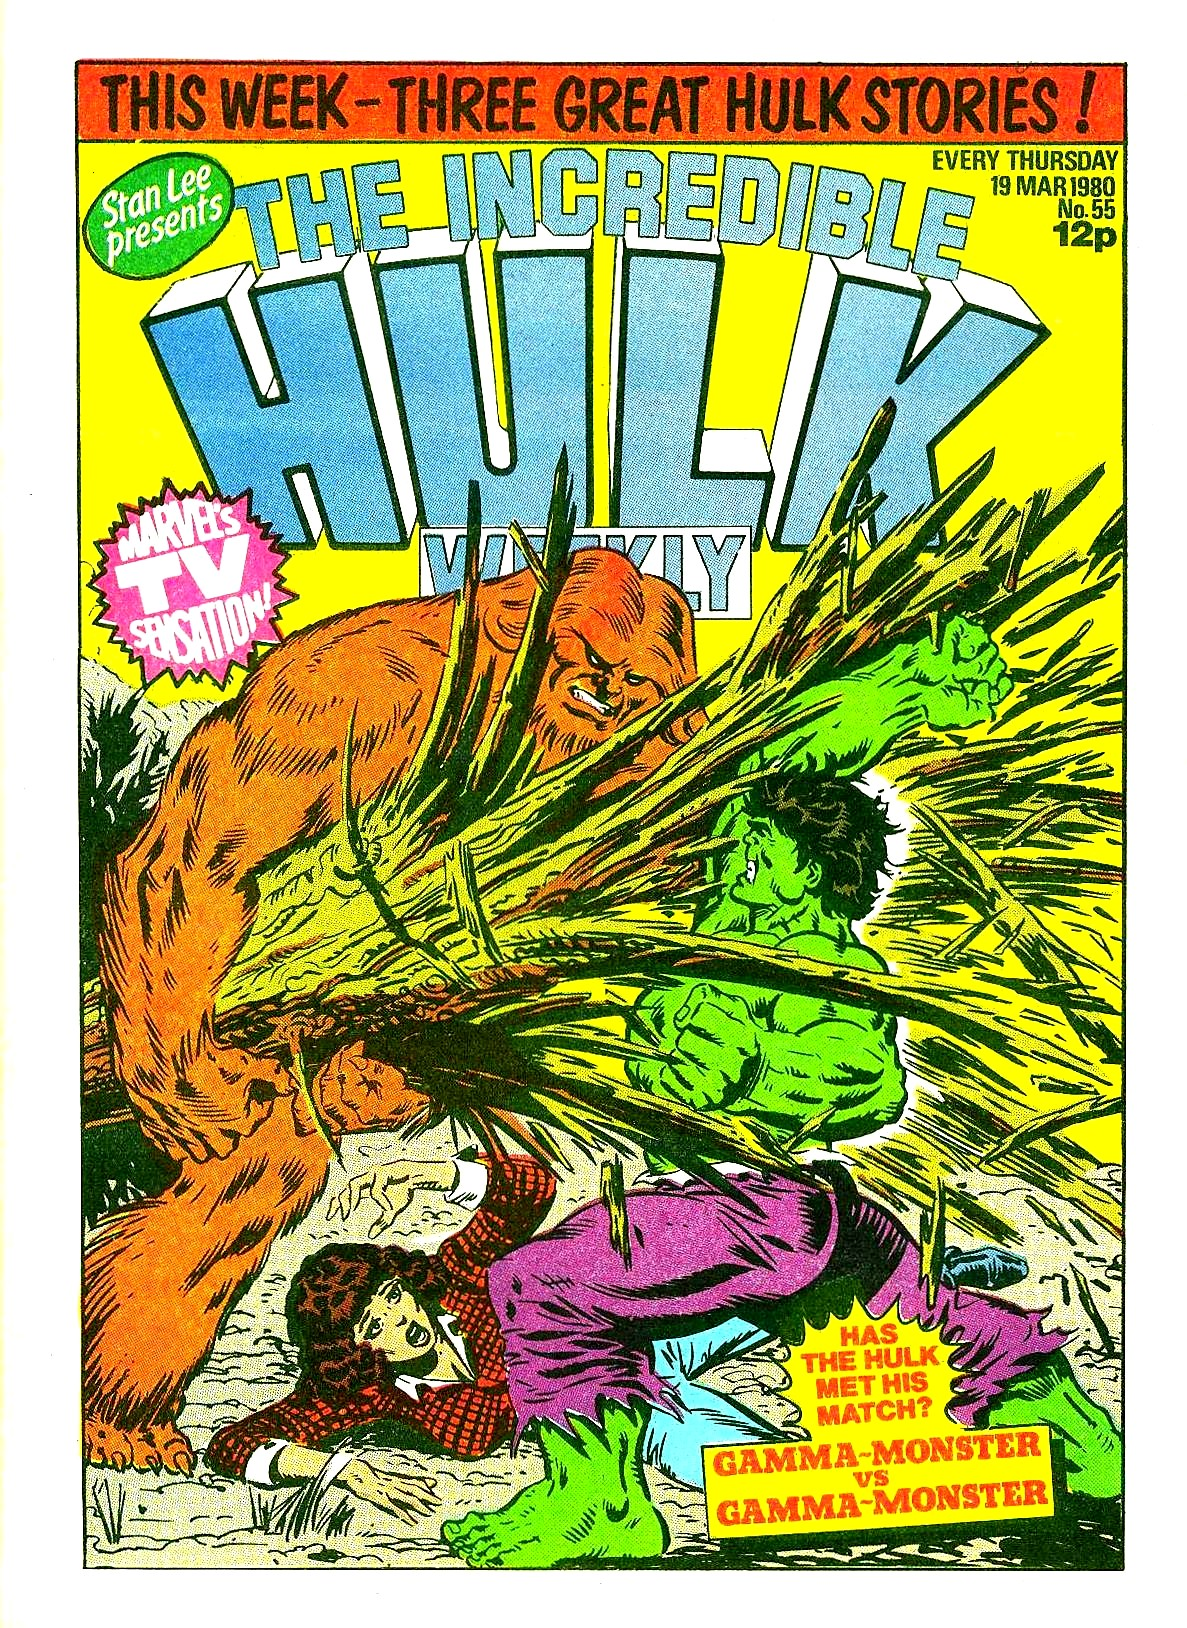 The Incredible Hulk Weekly 55 Page 1